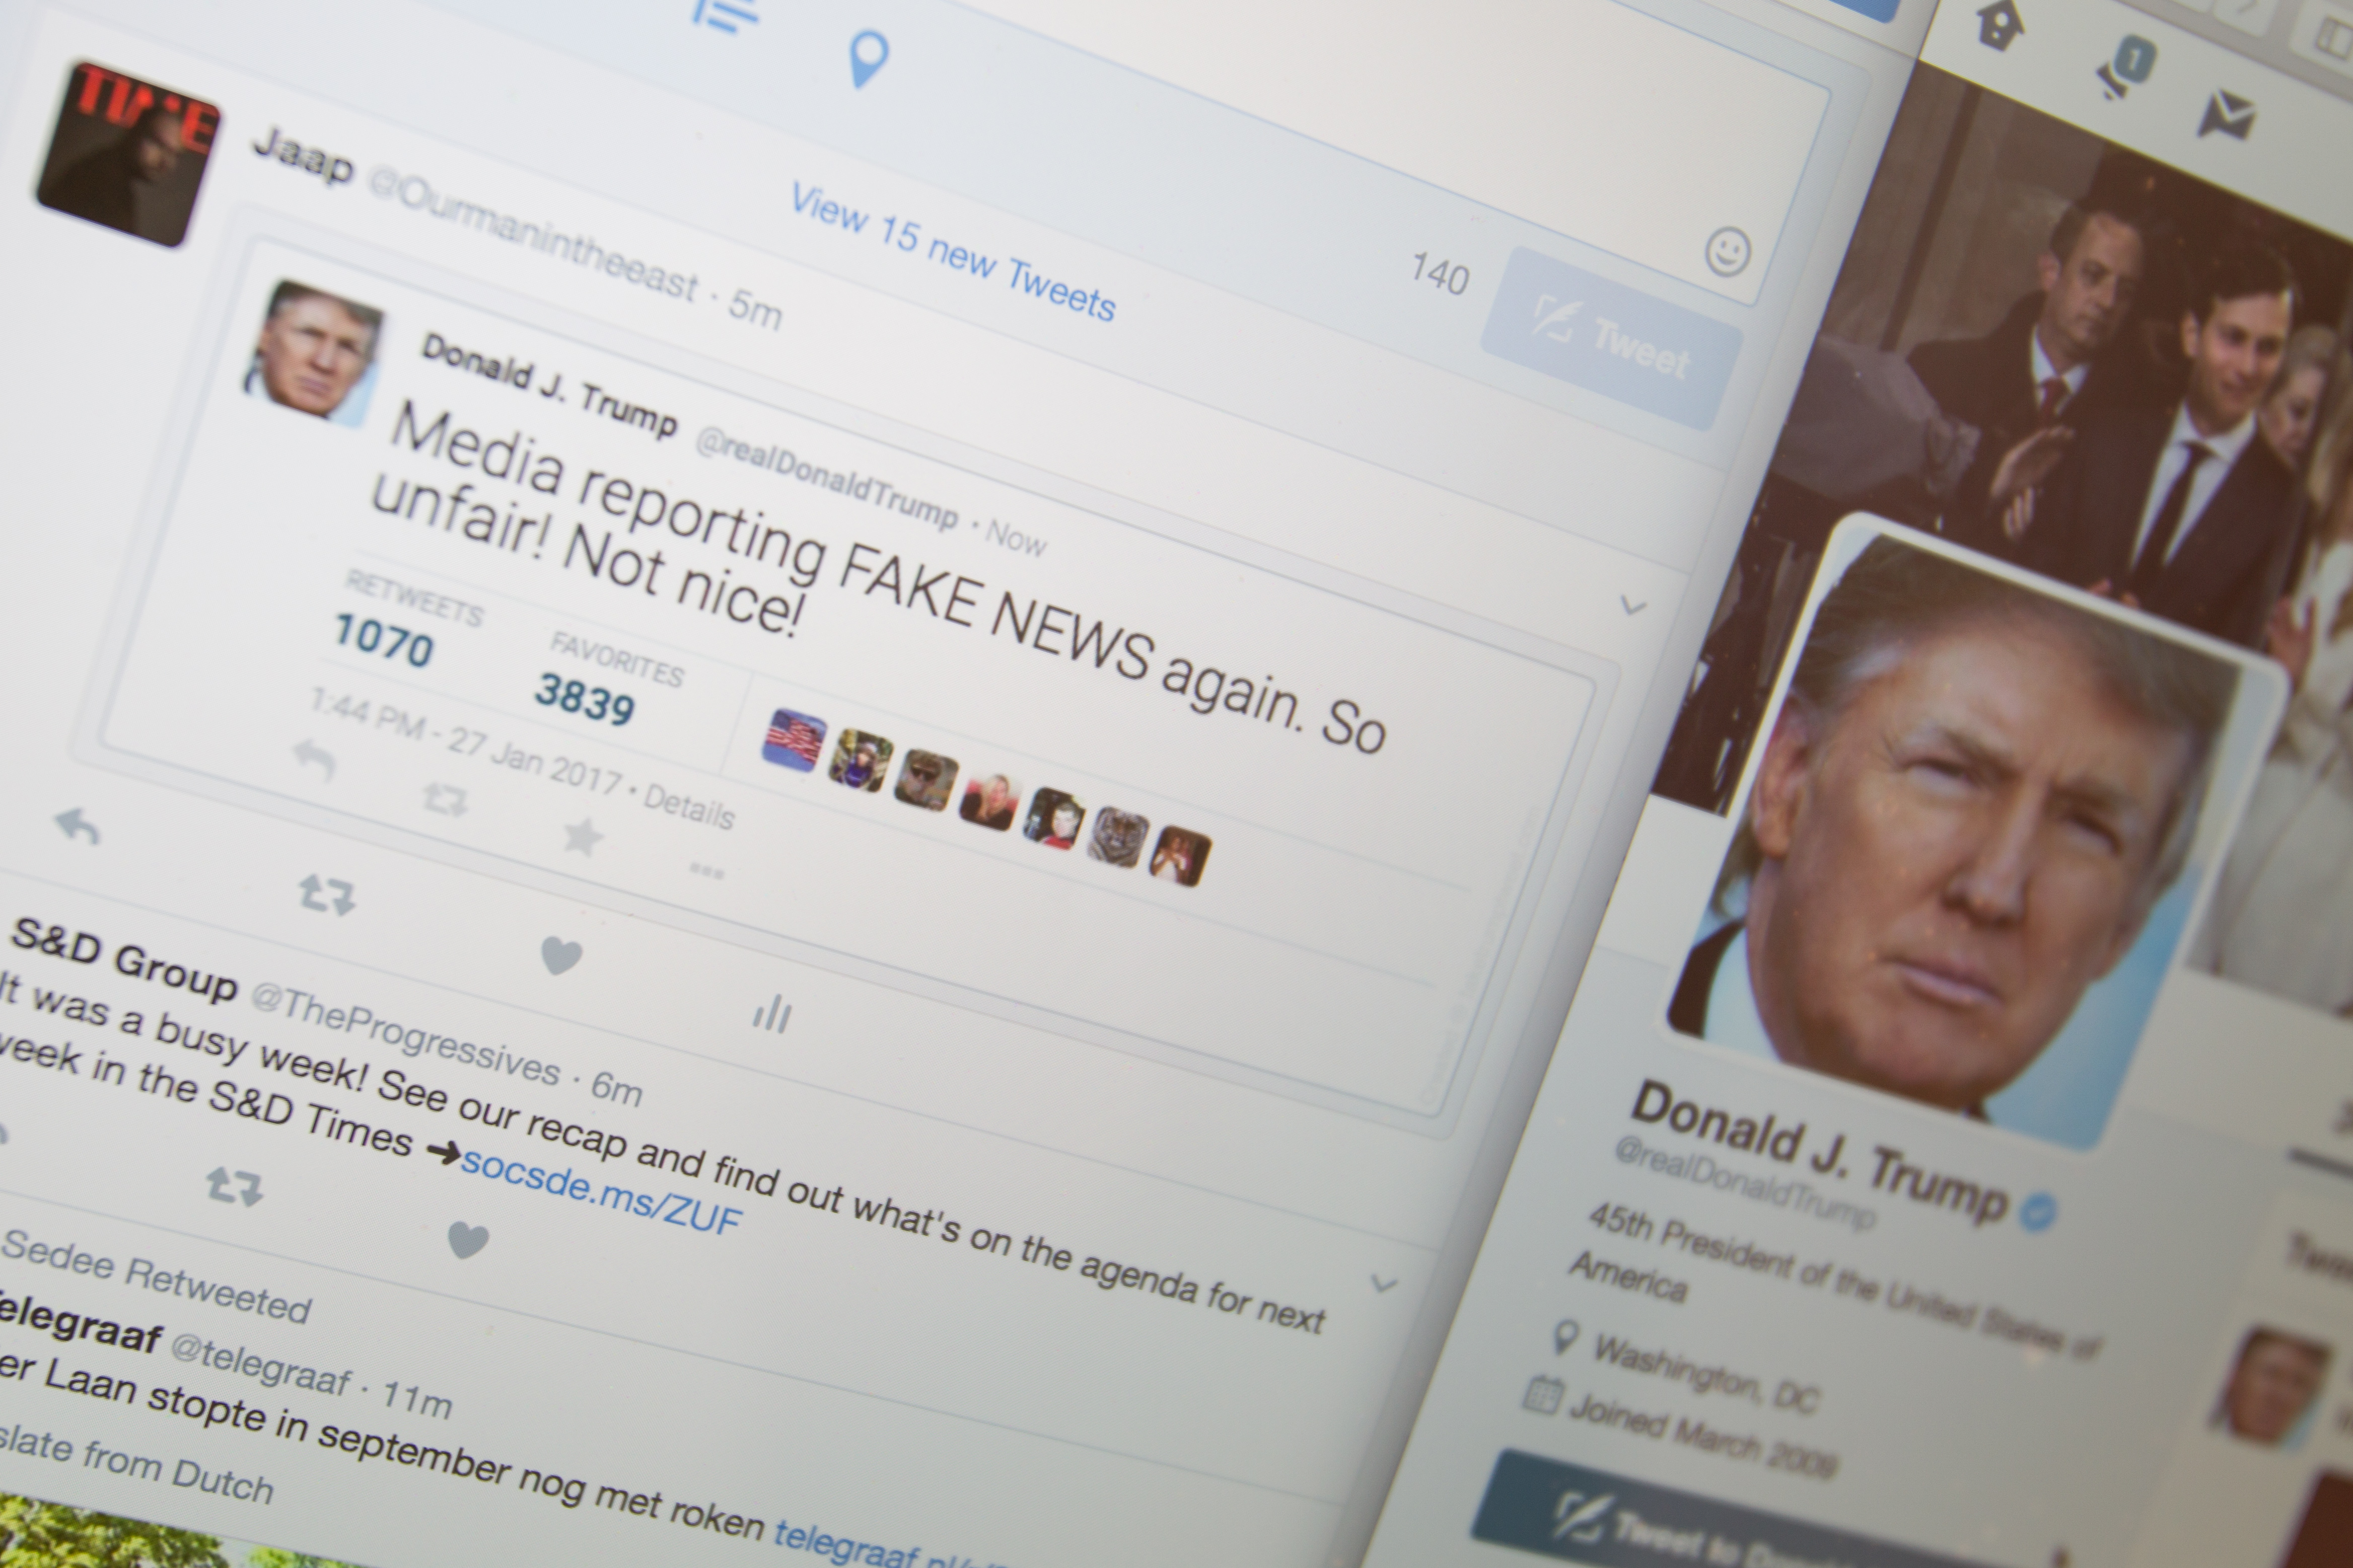 Fake Donald Trump tweets are seen in a Twitter timeline on 27 Friday, 2017. In China a site that generates fake tweets that look as if they were generated by US president Donald Trump are being used to mock the president.